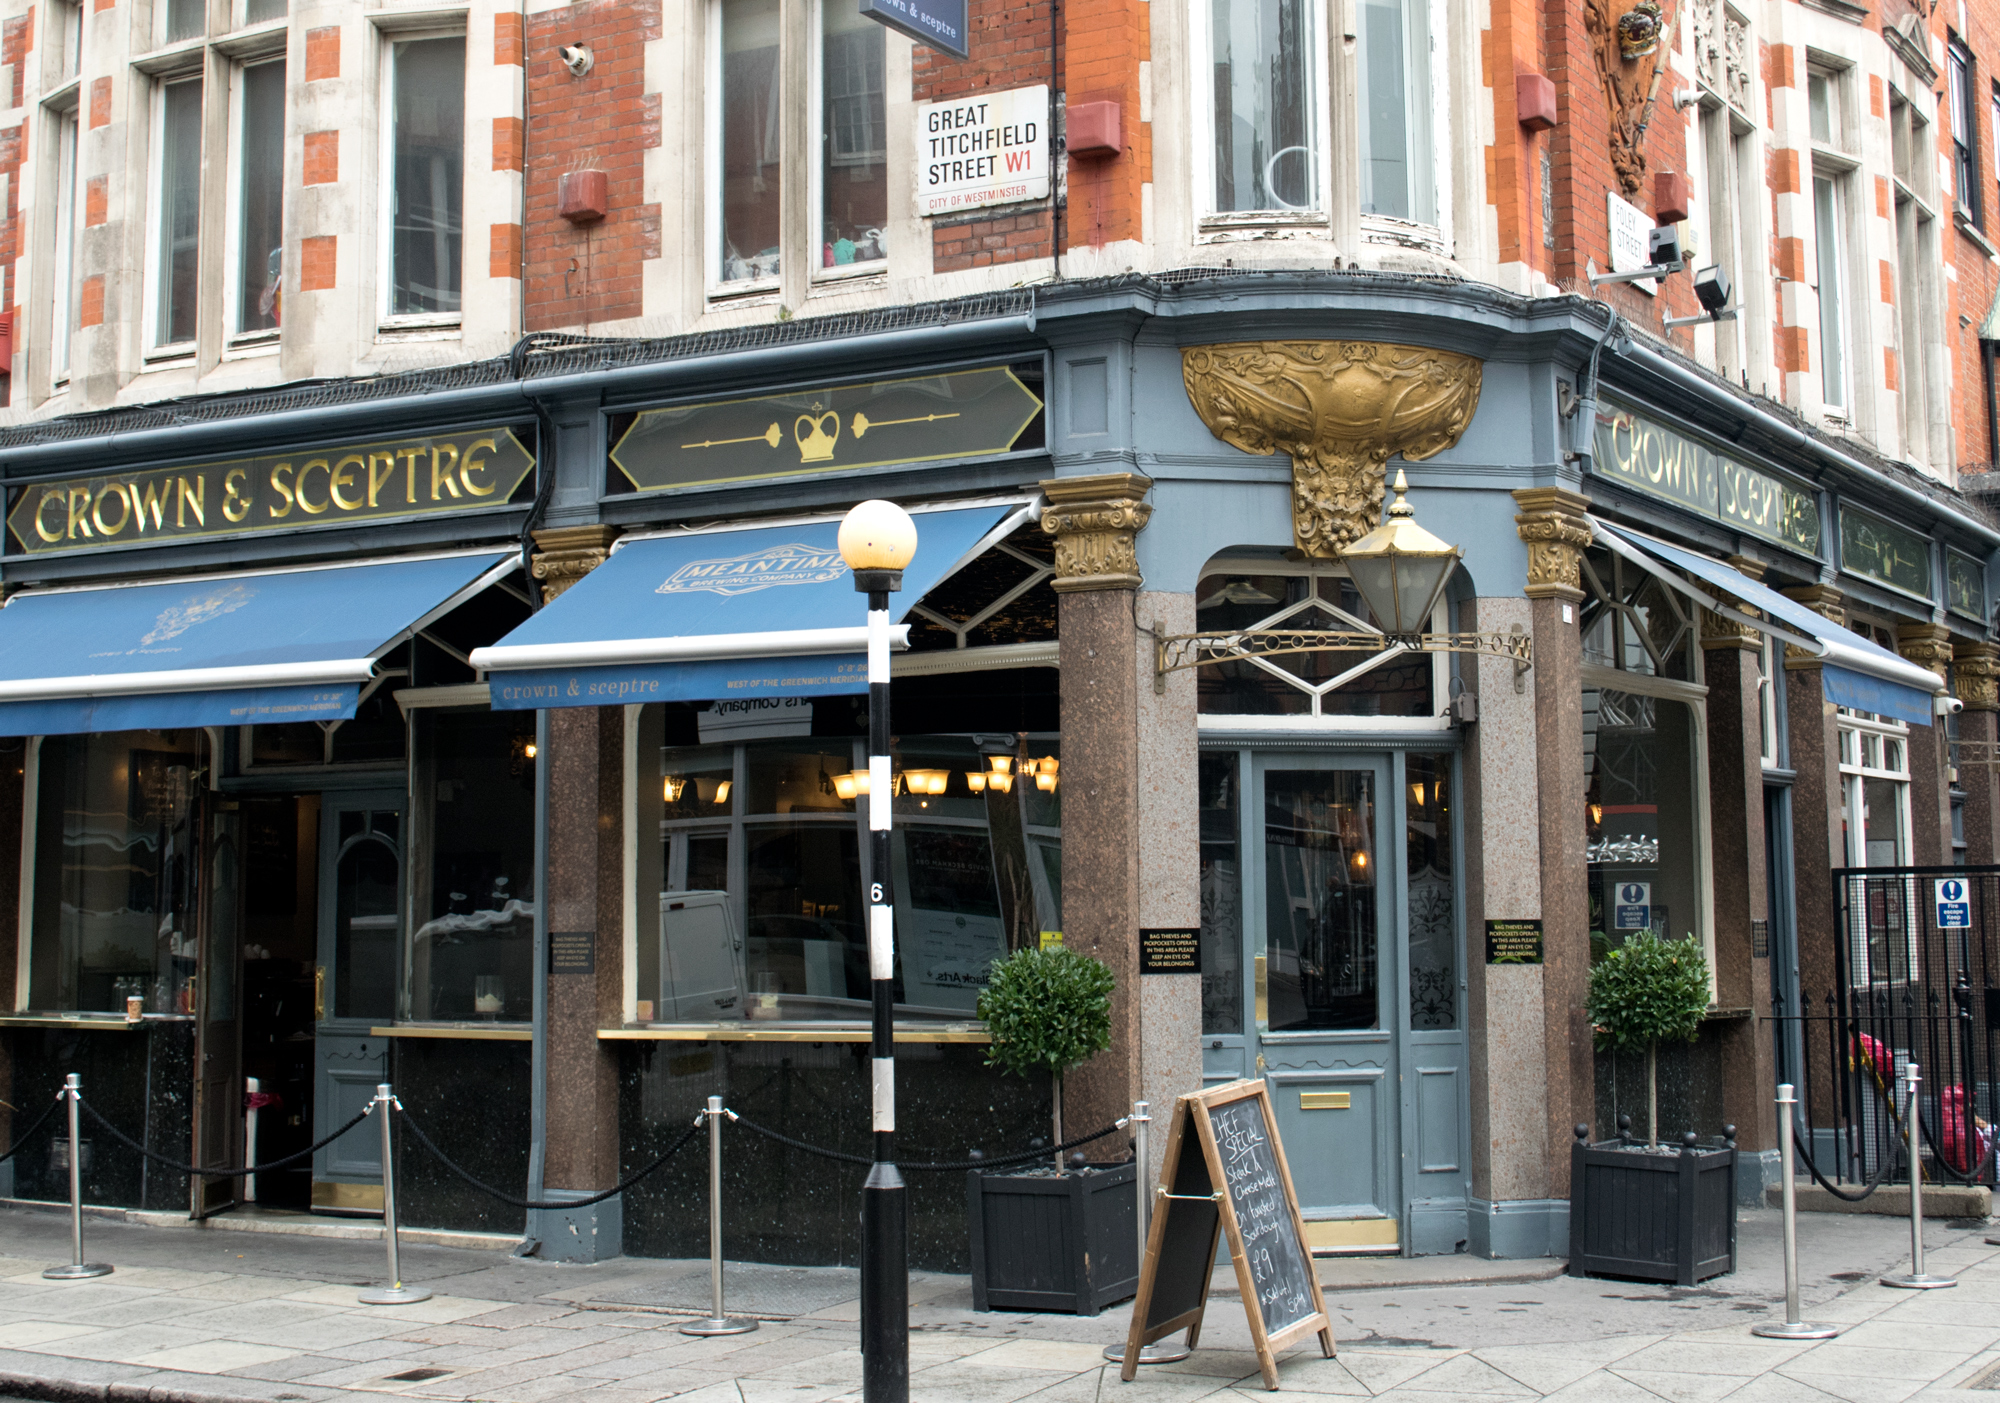 Straight Forward Design - We love Fitzrovia. The Crown and Sceptre